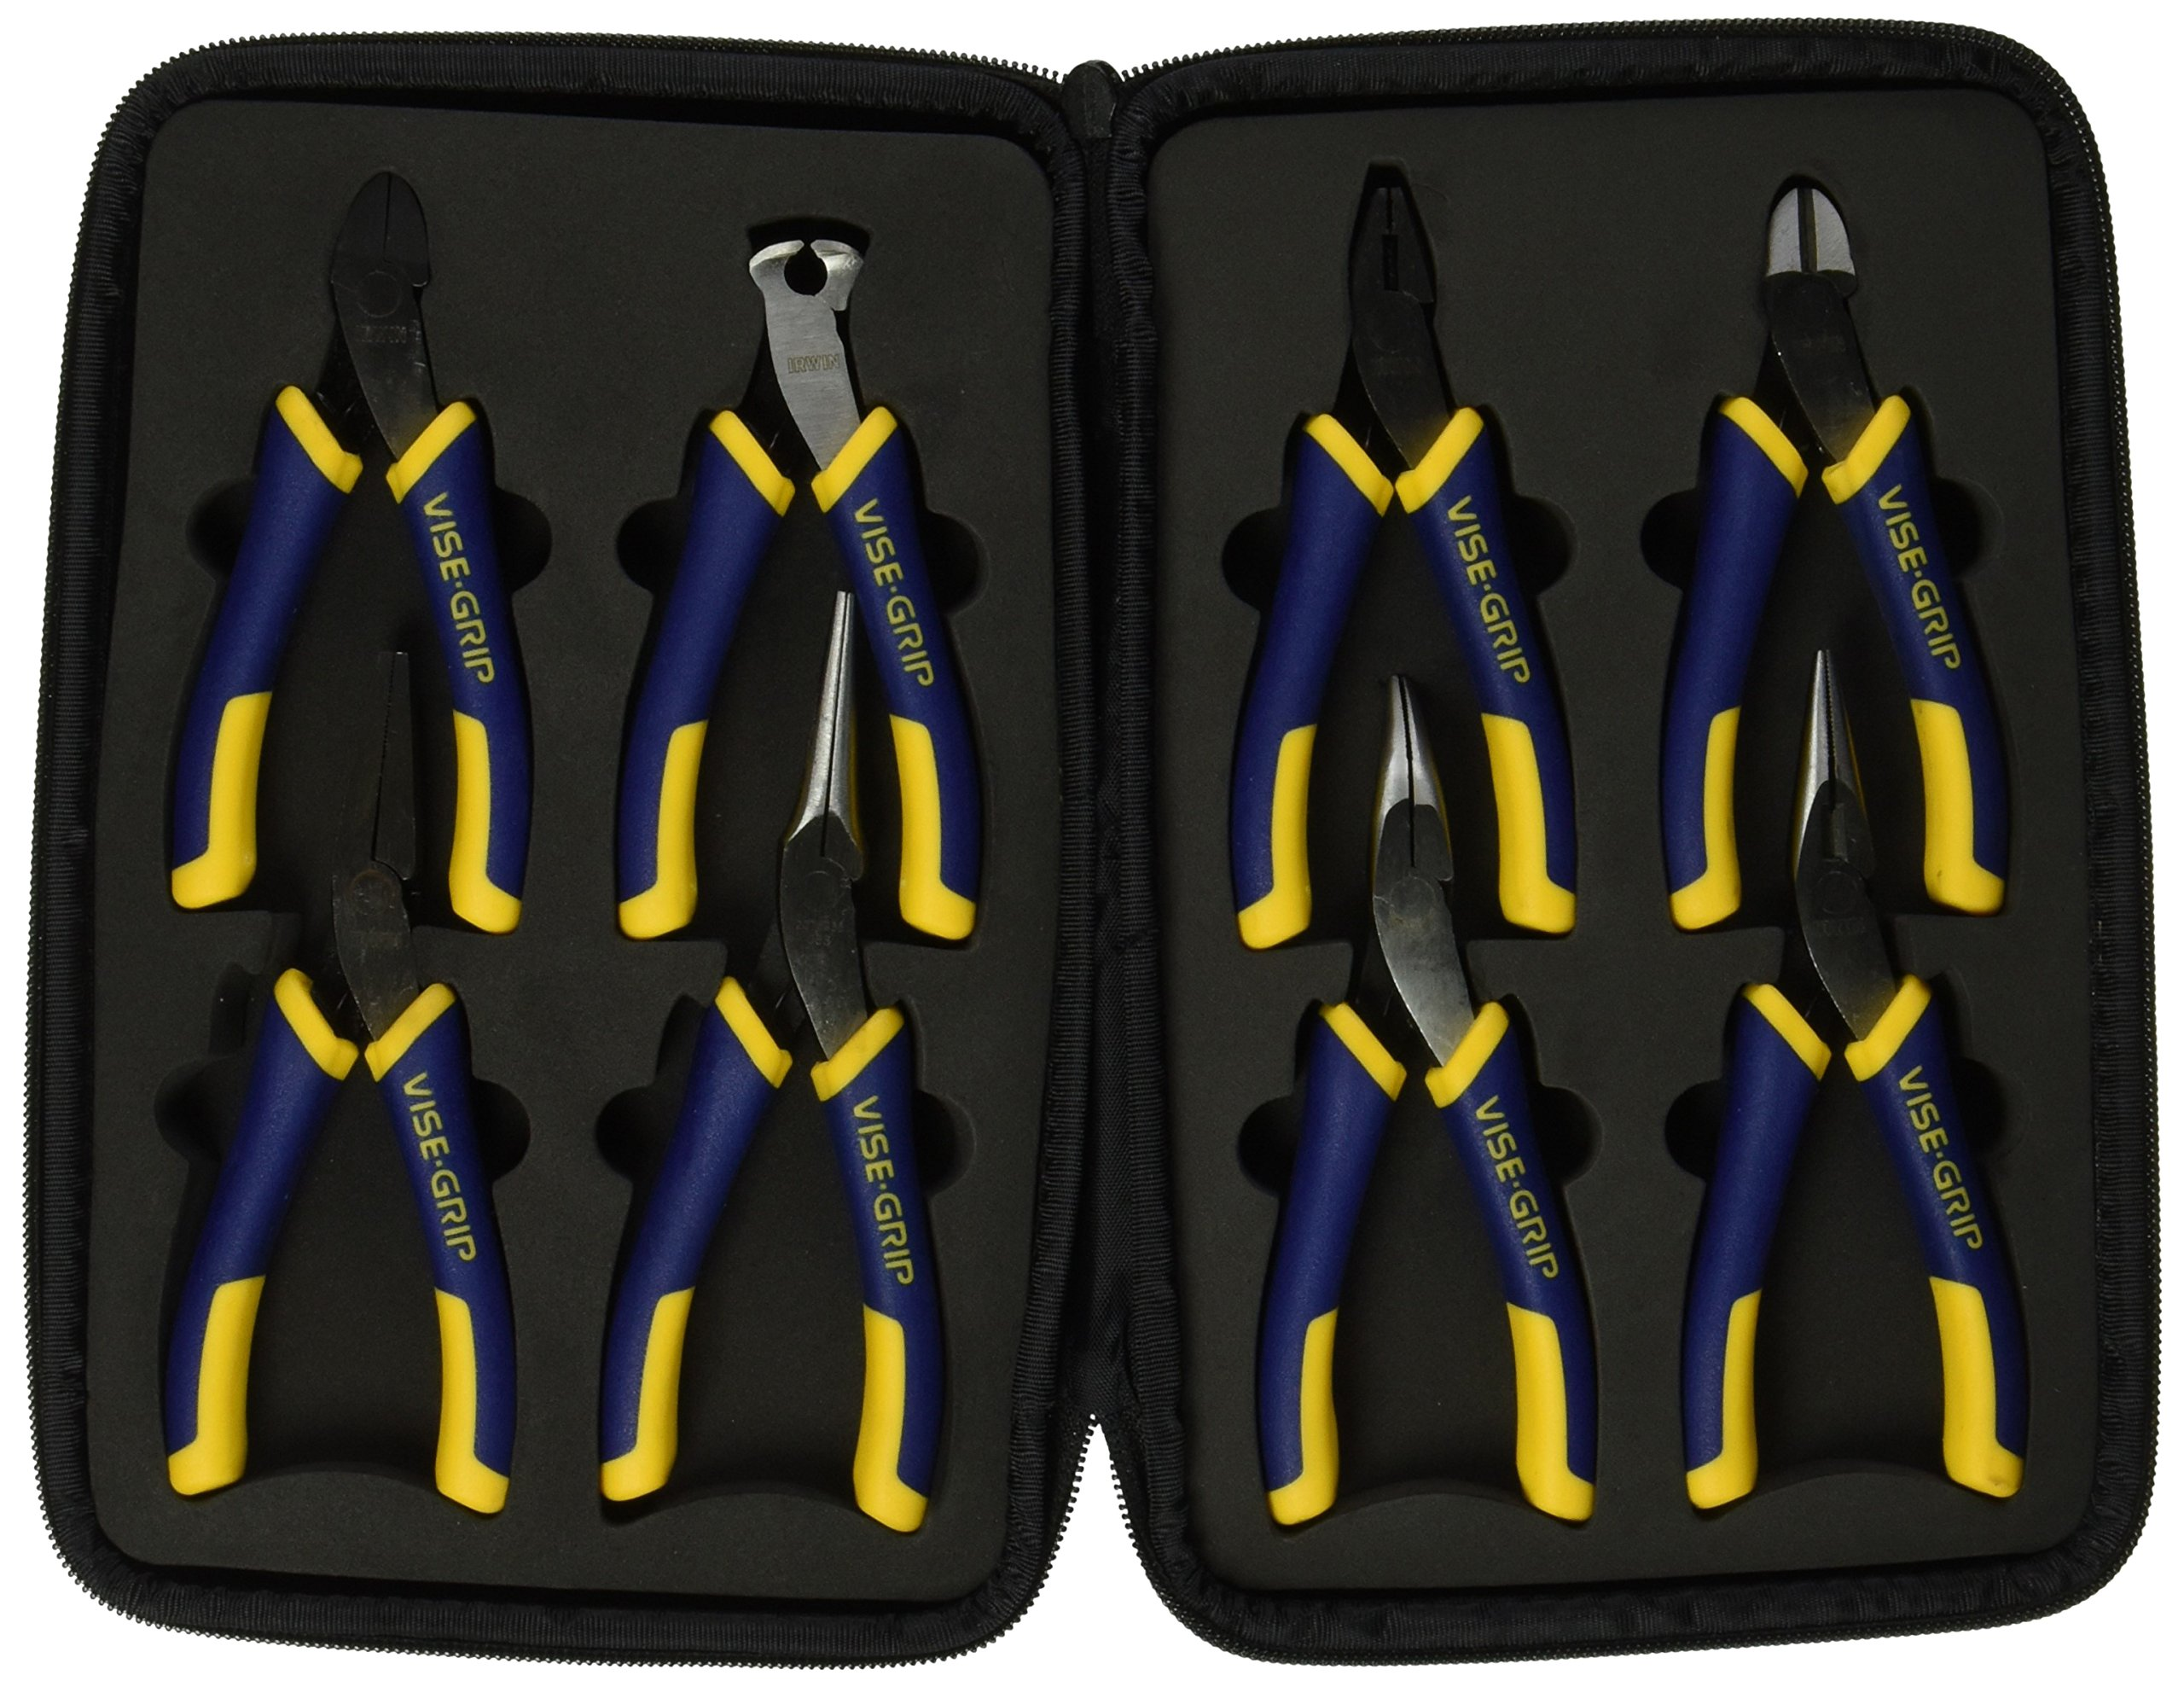 IRWIN VISE-GRIP Pliers Set with Case, 8 Pieces (2078714) by IRWIN